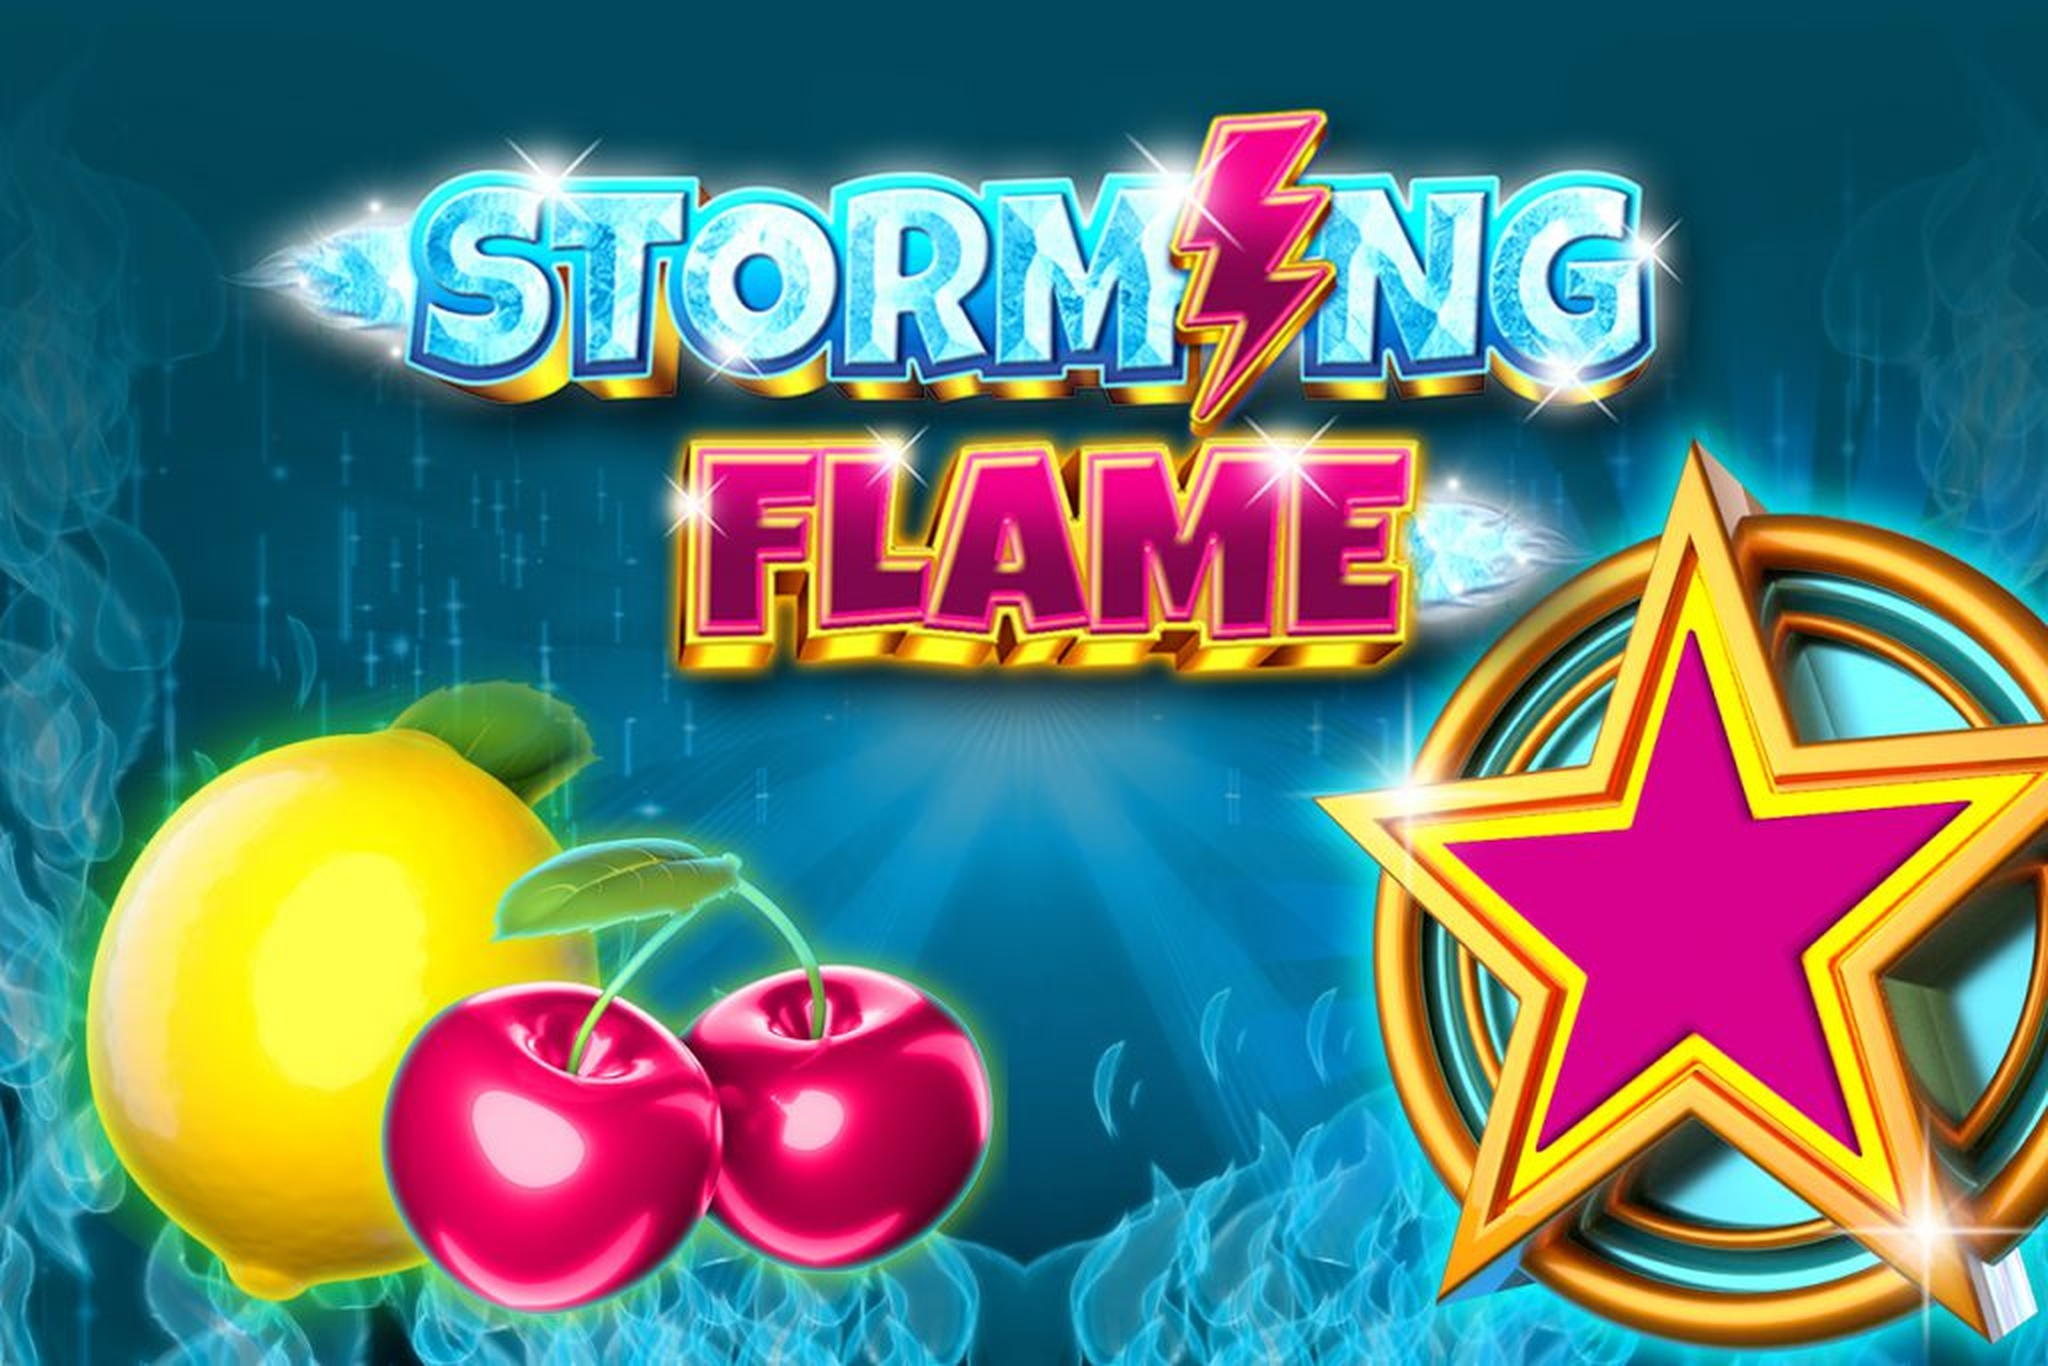 The Storming Flame Online Slot Demo Game by GameArt